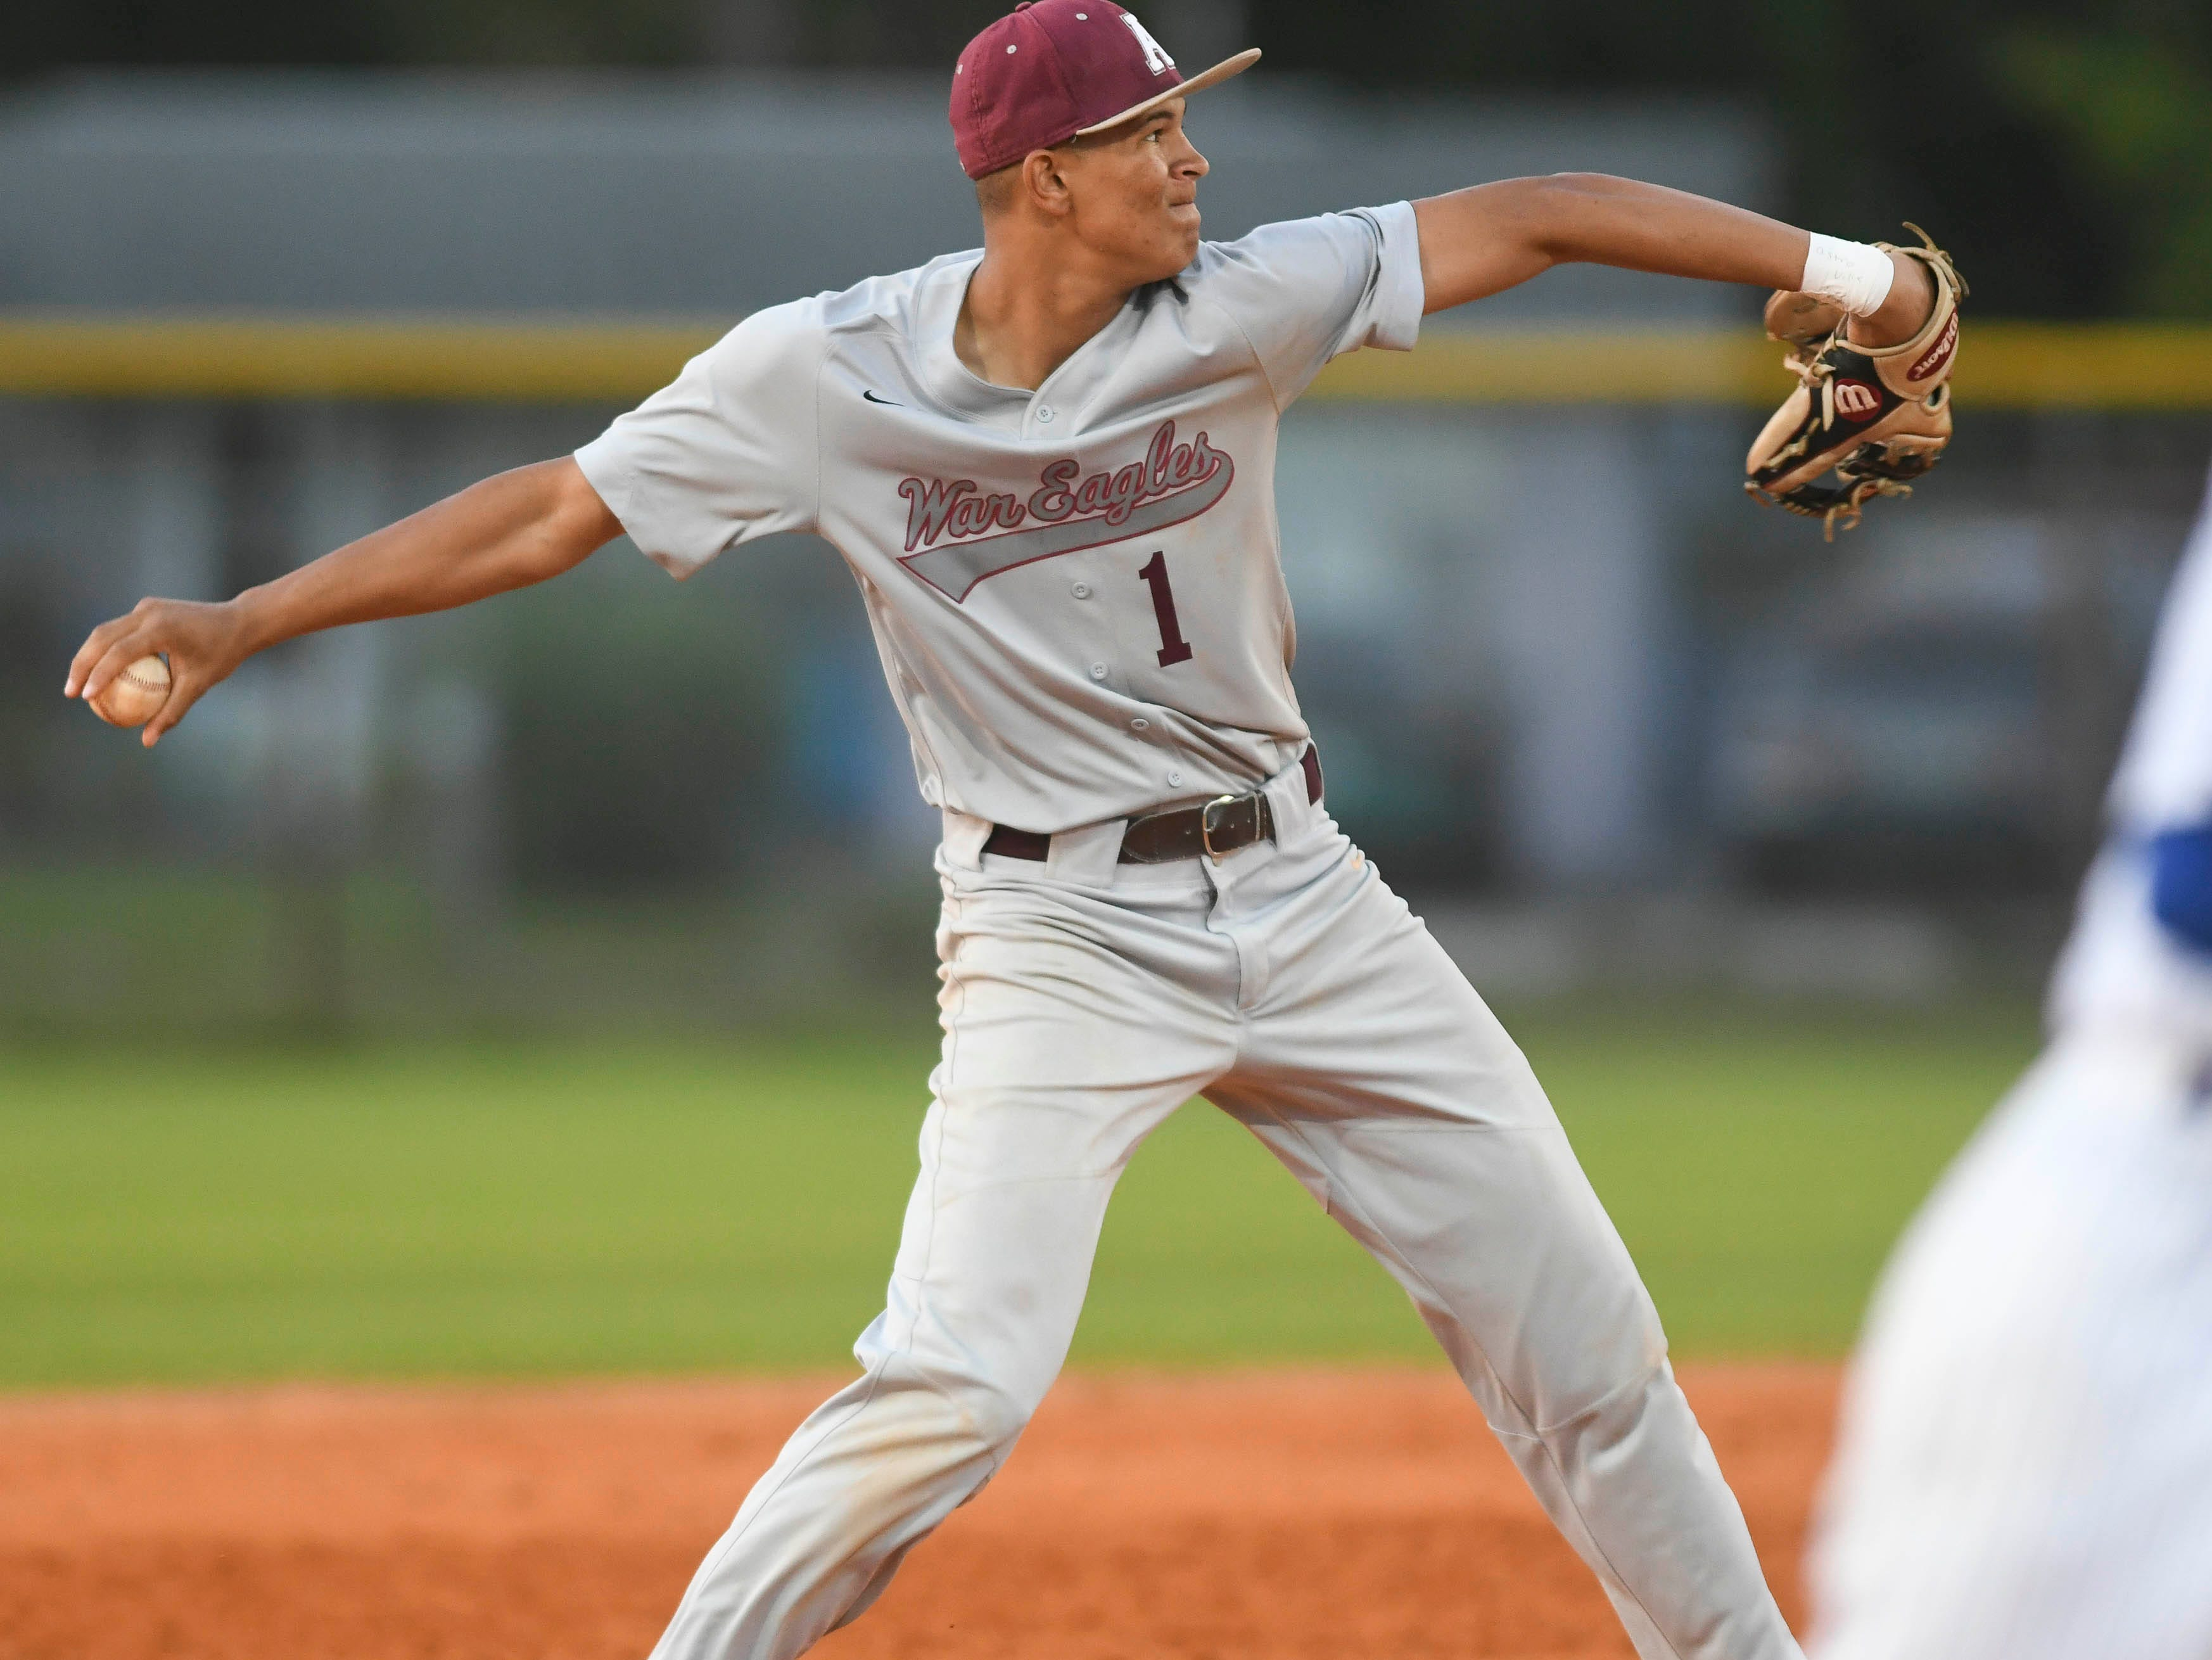 Daymon Wooodraff of Astronaut throws out a Titusville baserunner during Thursday's game.